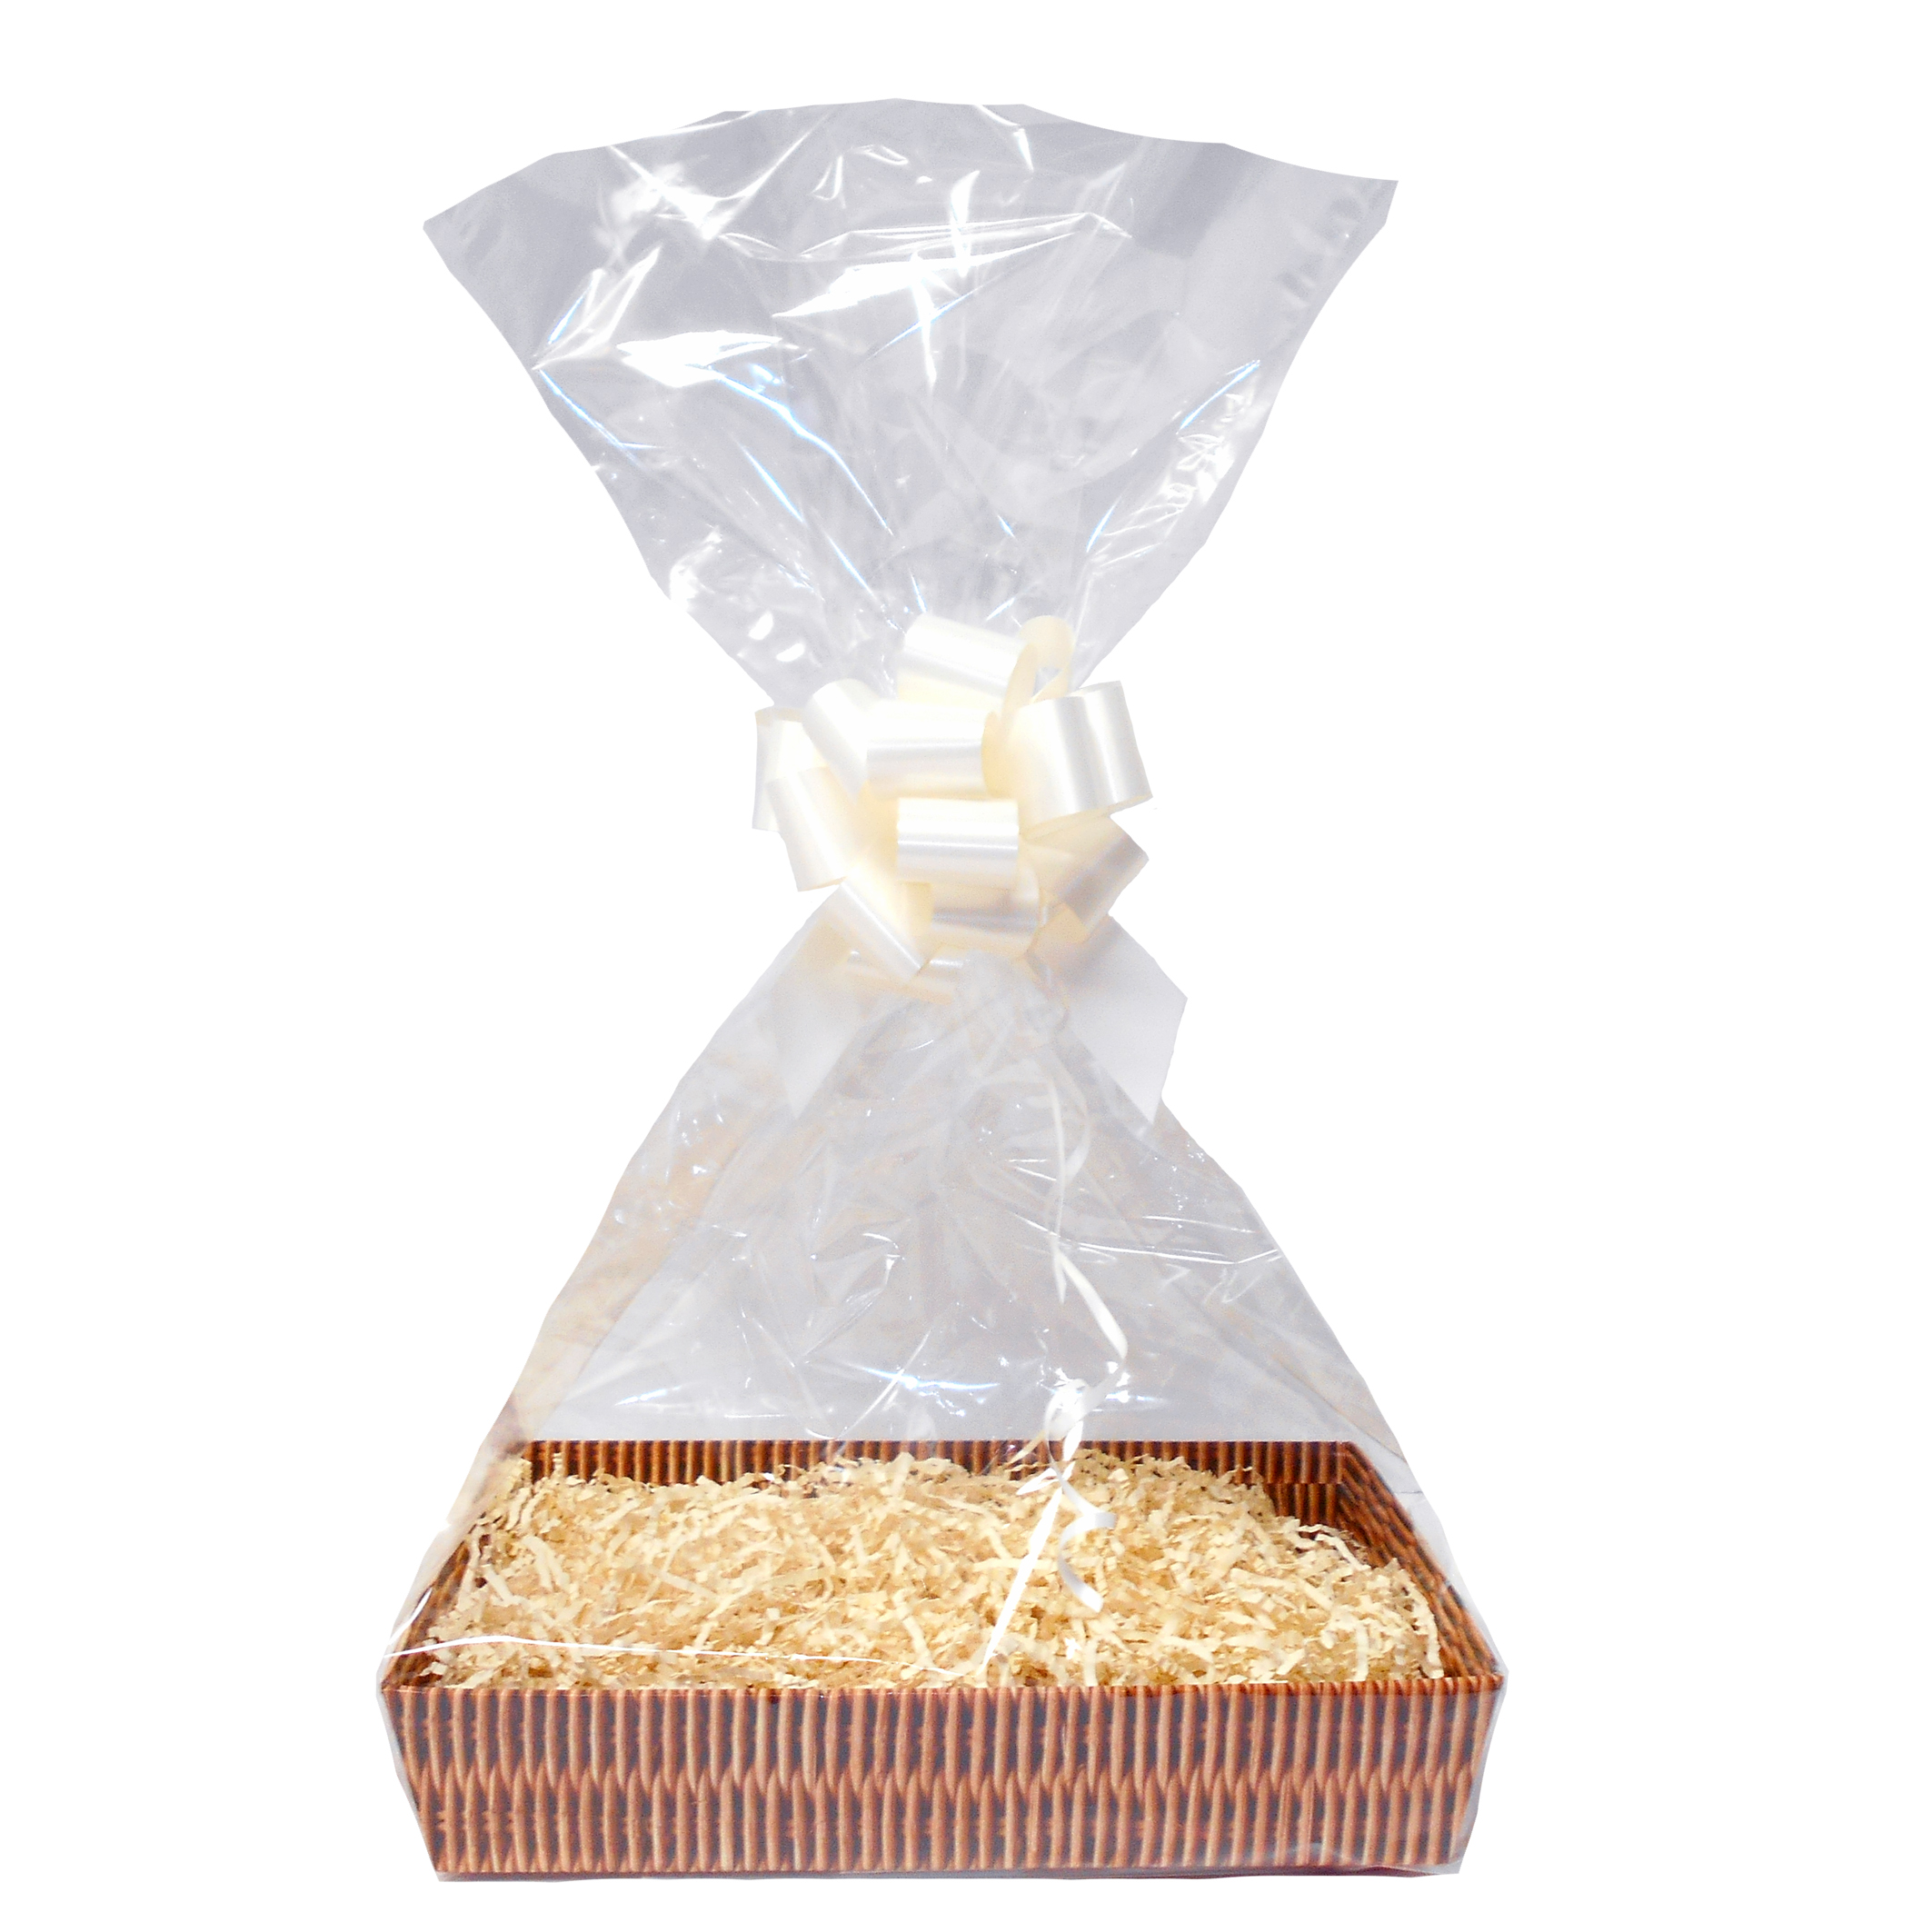 Complete Gift Basket Kit - (Large) WICKER TRAY / CREAM ACCESSORIES